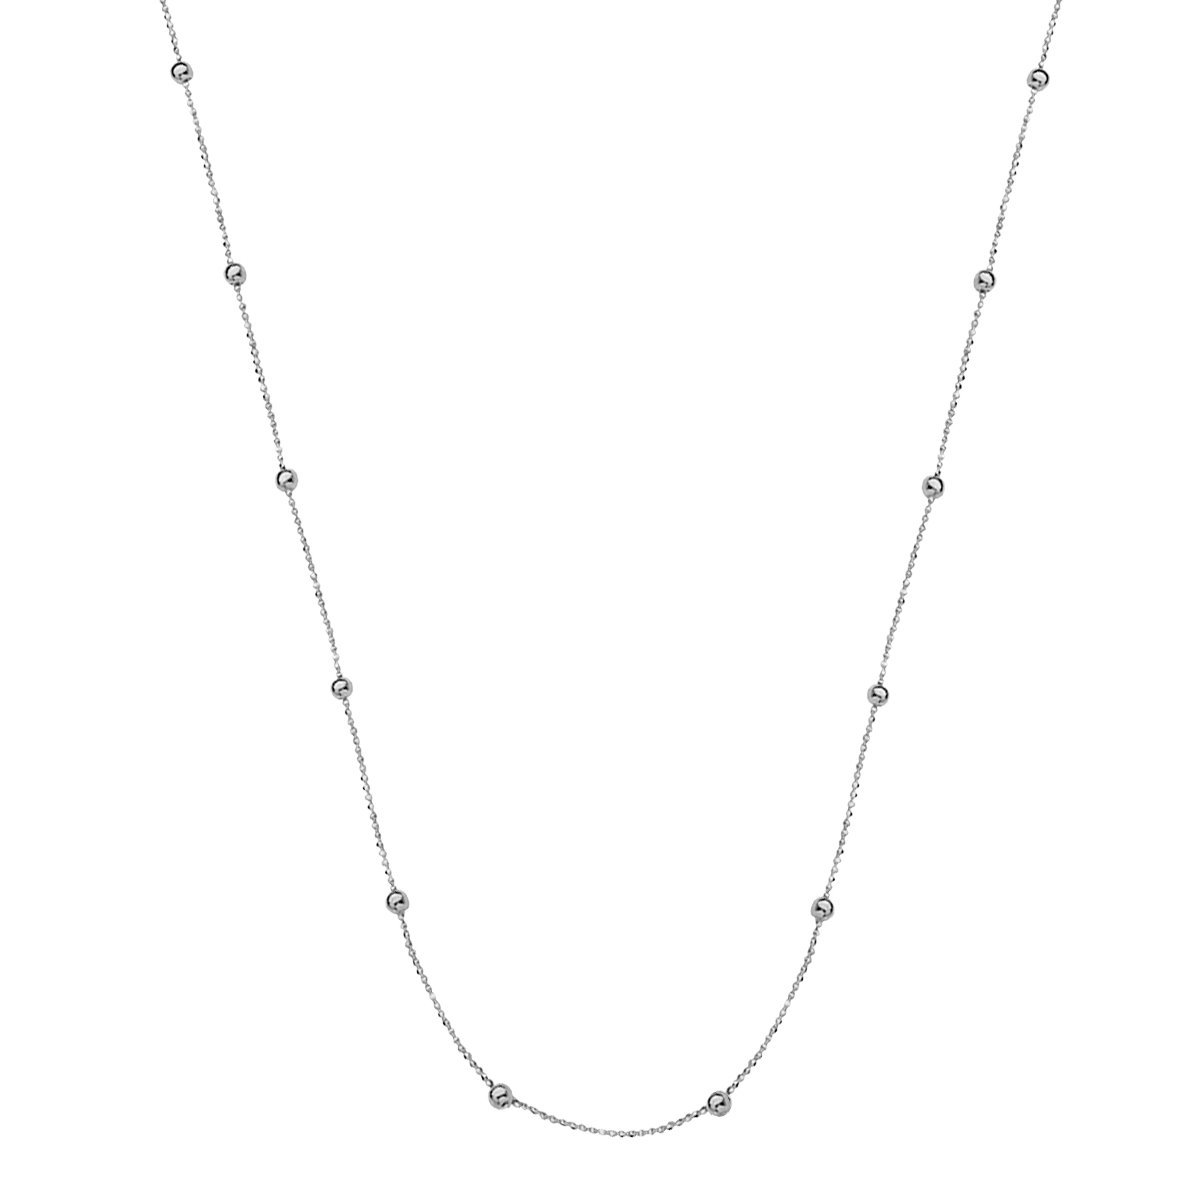 Small Micro Bead Necklace Station Style 14k White Gold, 36